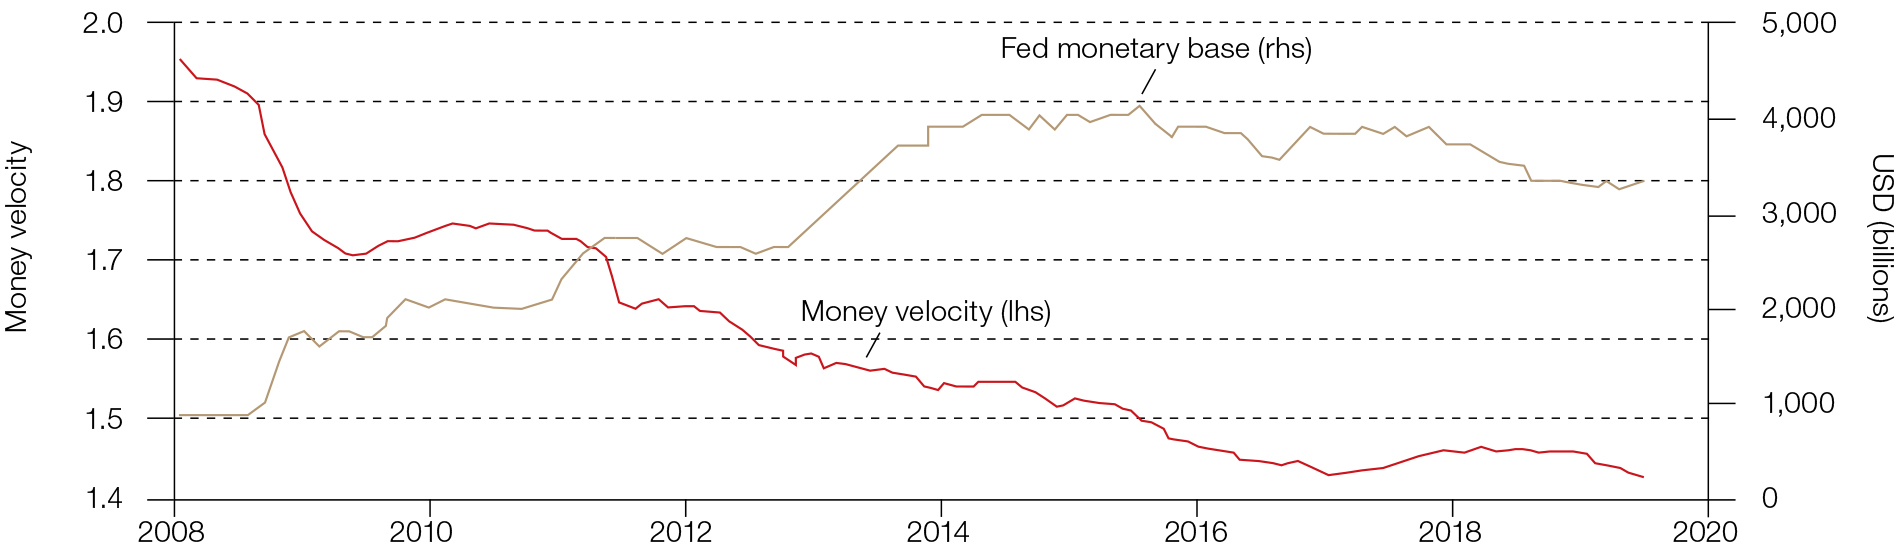 Extra liquidity created by the Fed did not lead to higher inflation due to a declining money velocity